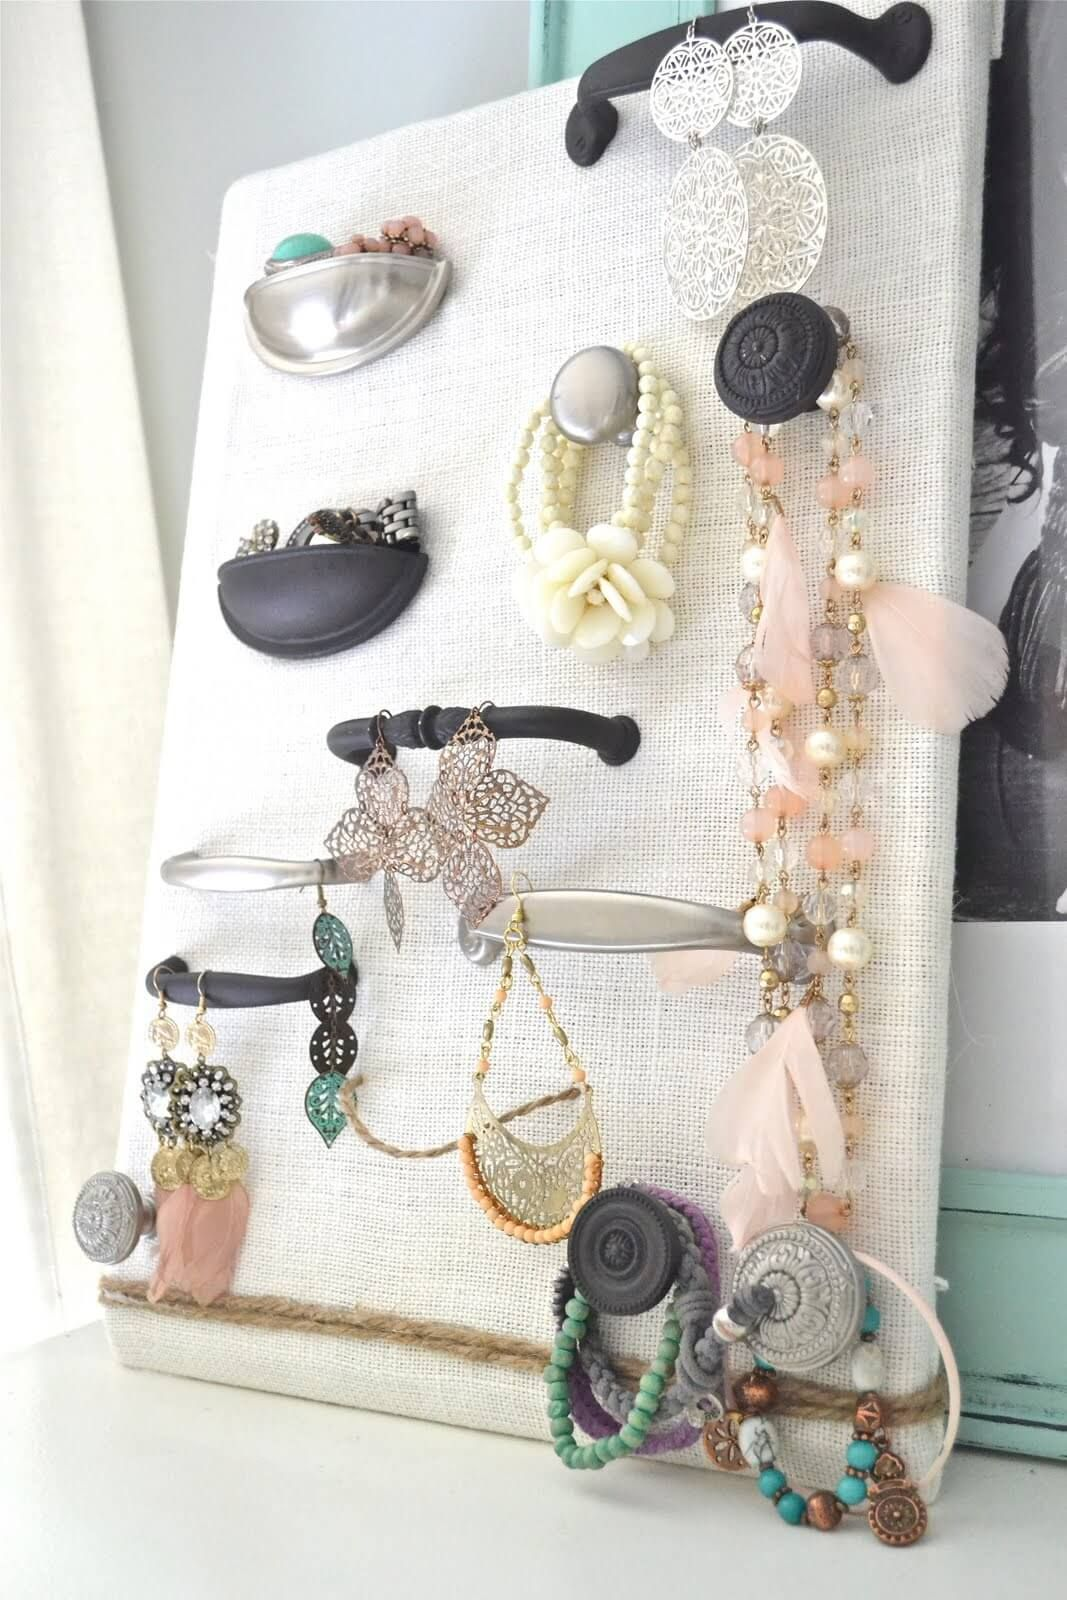 27 Brilliant Jewellery Organizer Ideas that Will Add Fun to